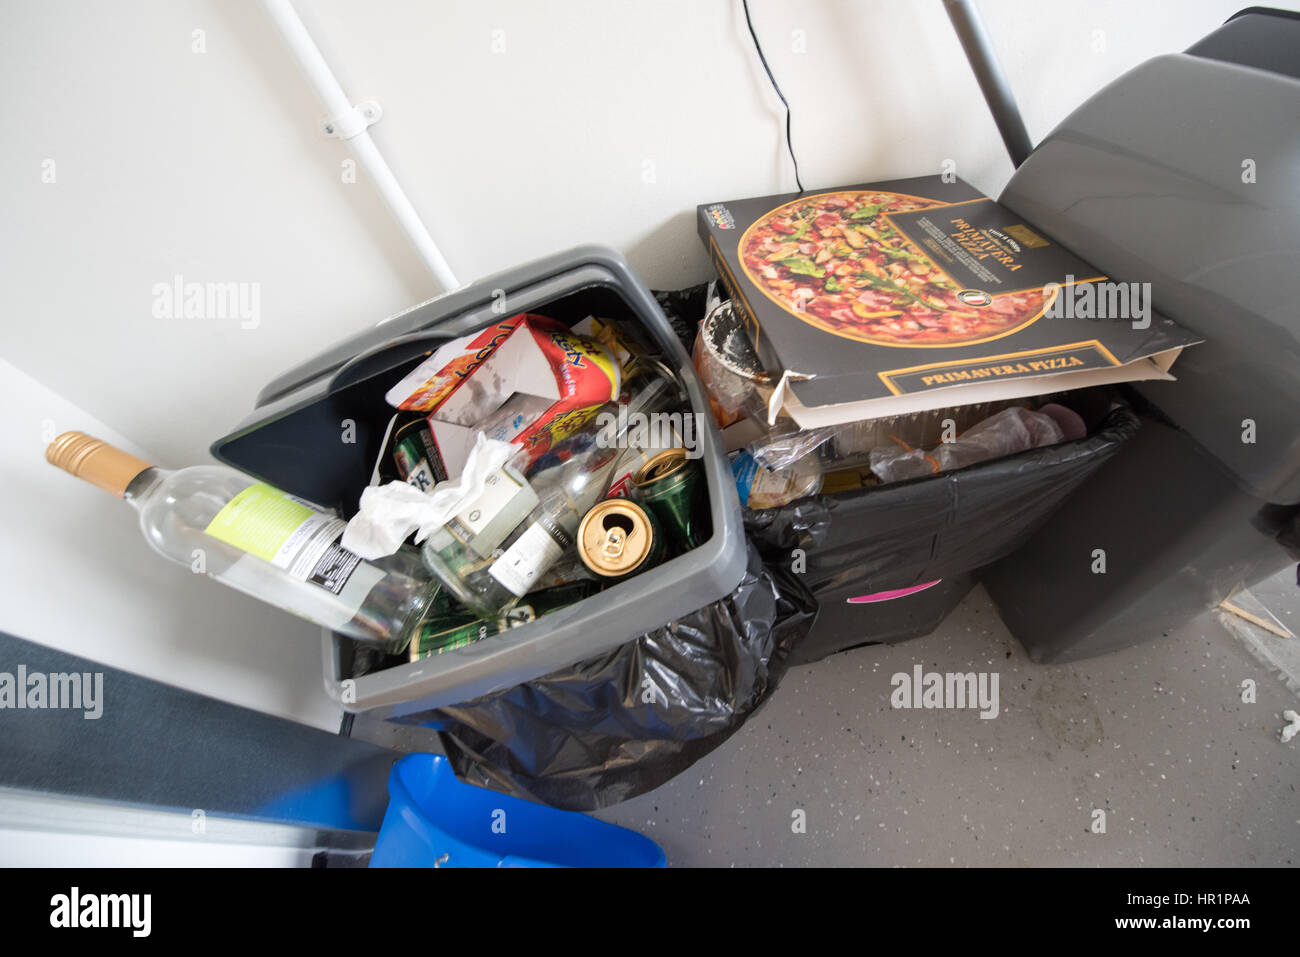 Overflowing dirty kitchen plastic swing bins full of rubbish, pizza boxes, wine bottles and beer cans in a student Stock Photo